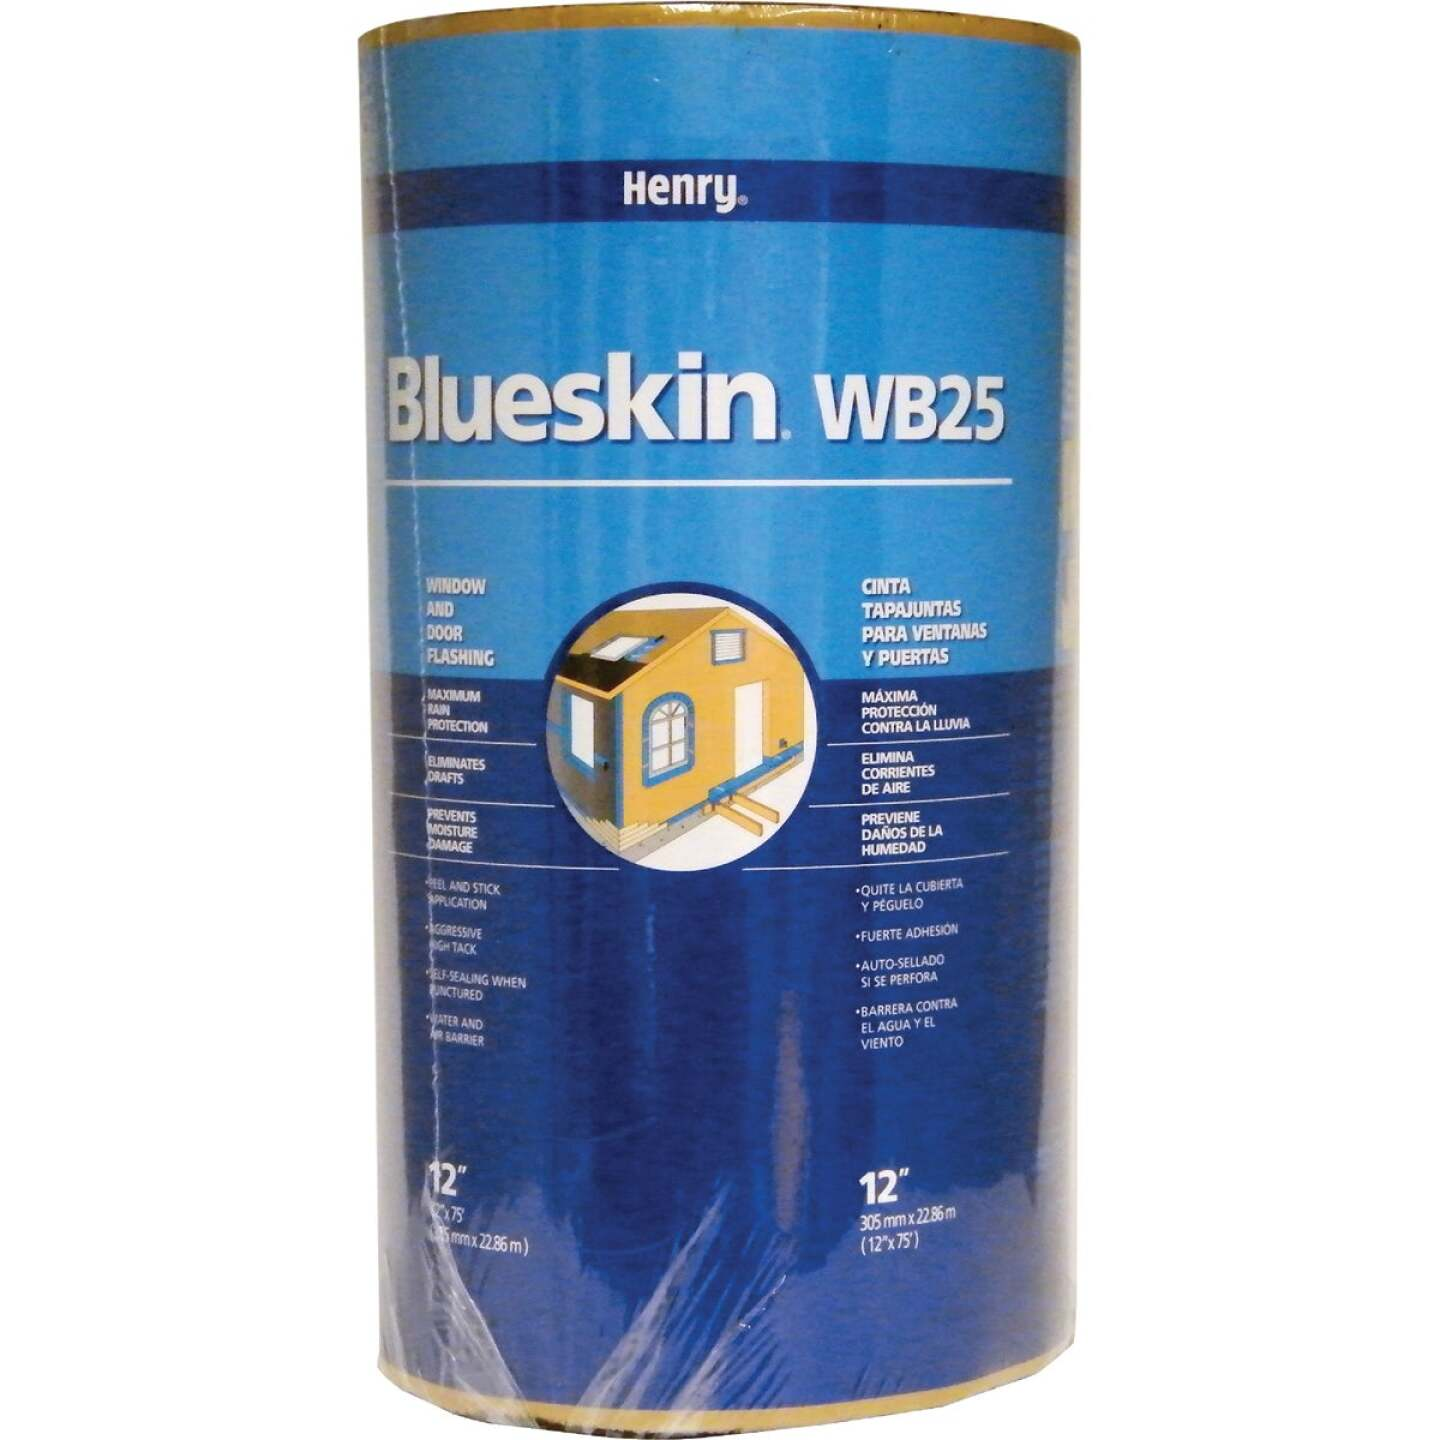 Henry Blueskin WB25 12 In. X 75 Ft. Window Wrap & Flashing Tape Image 1